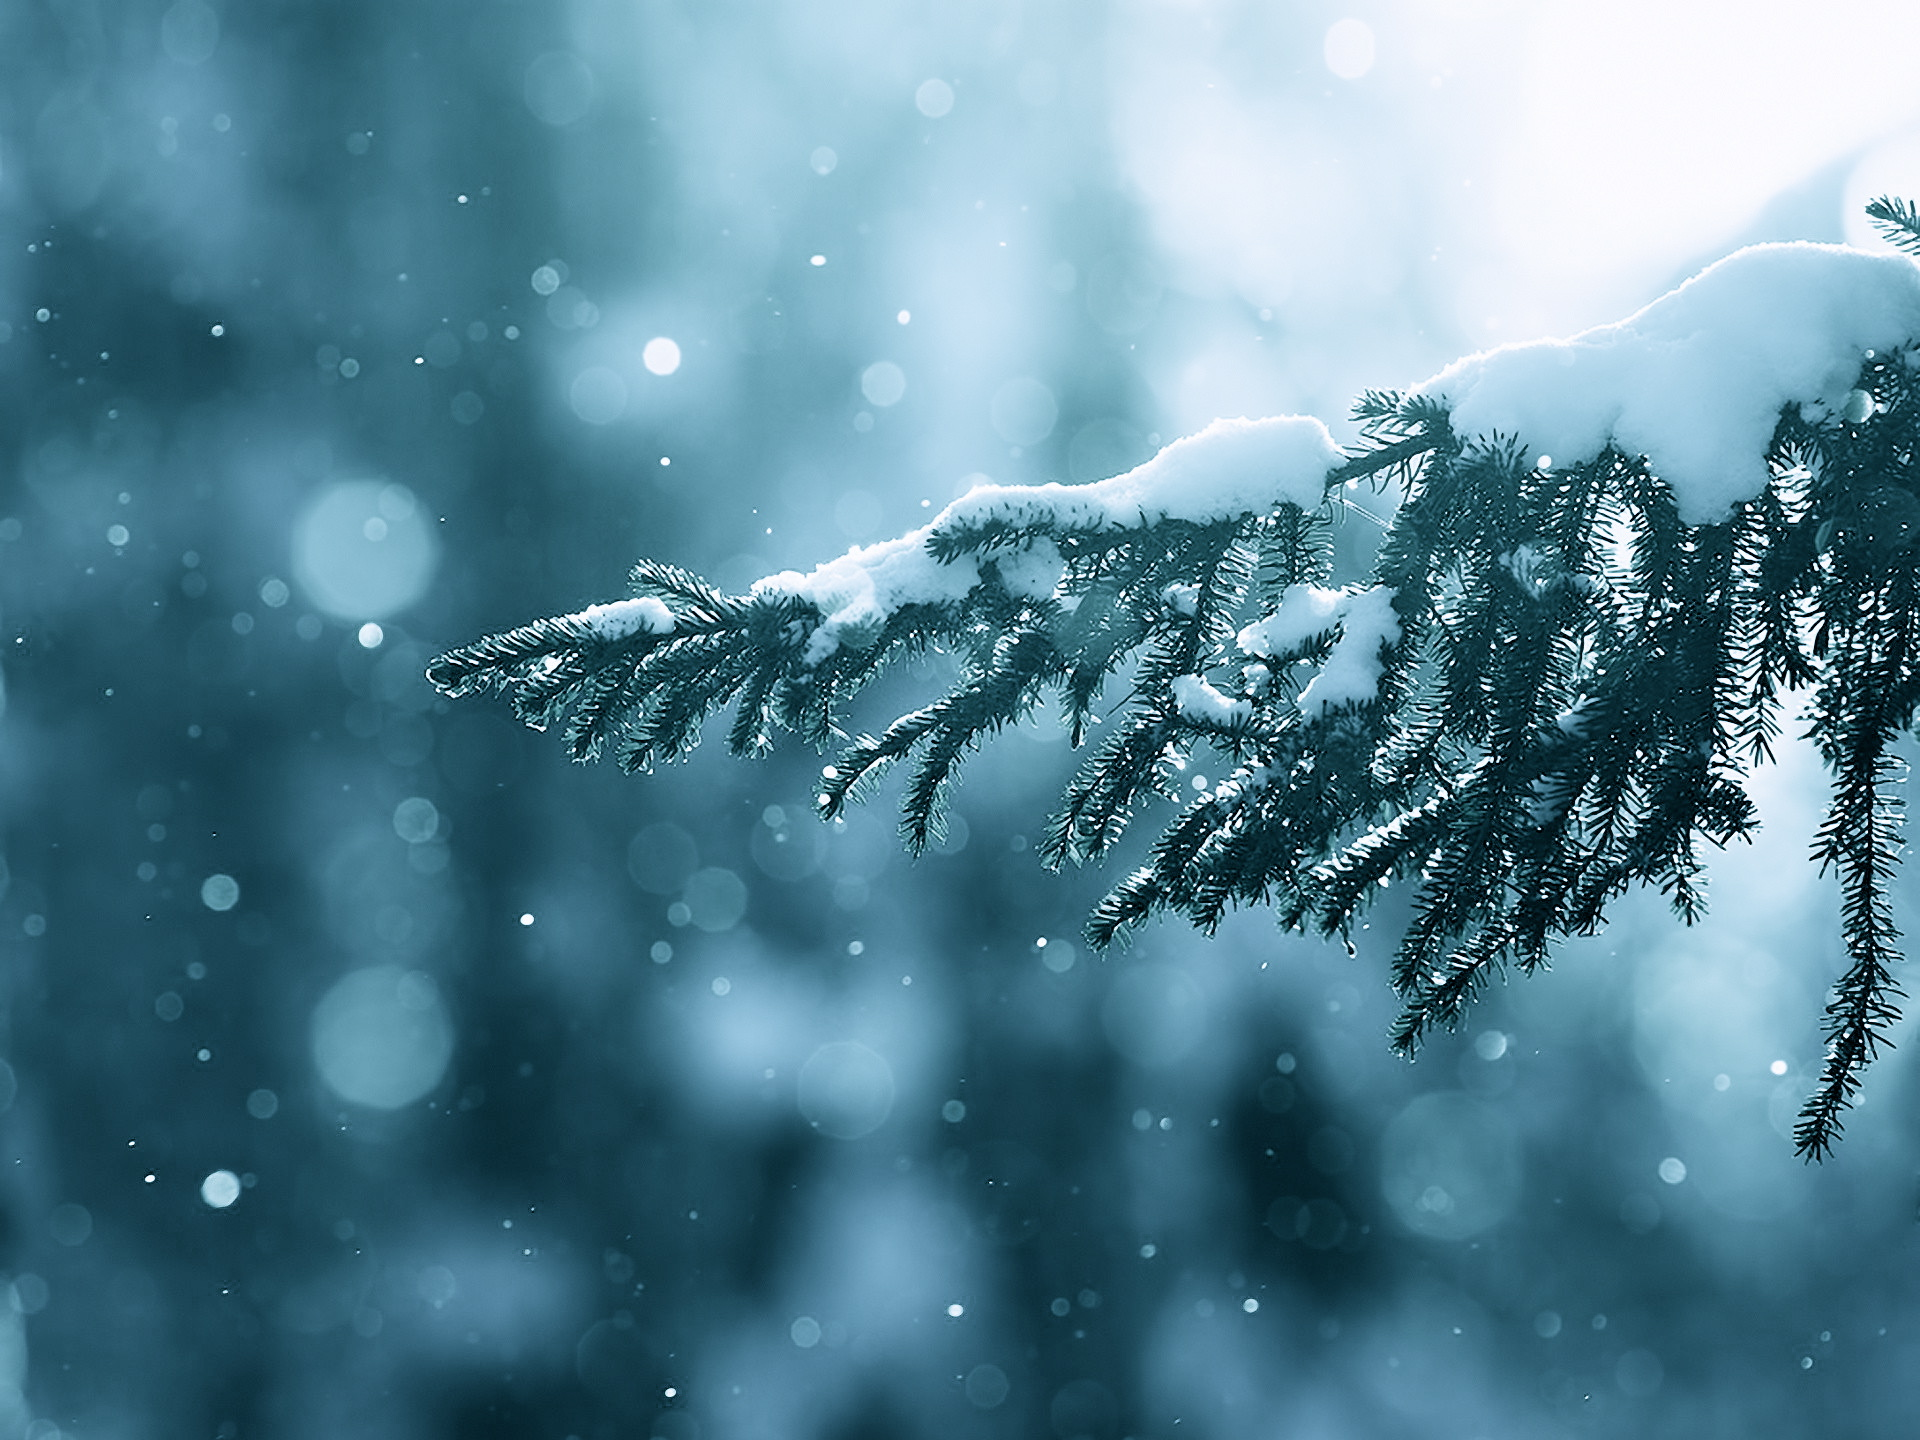 Free Download Winter Snow Wallpapers Mobile Nature Wallpaper